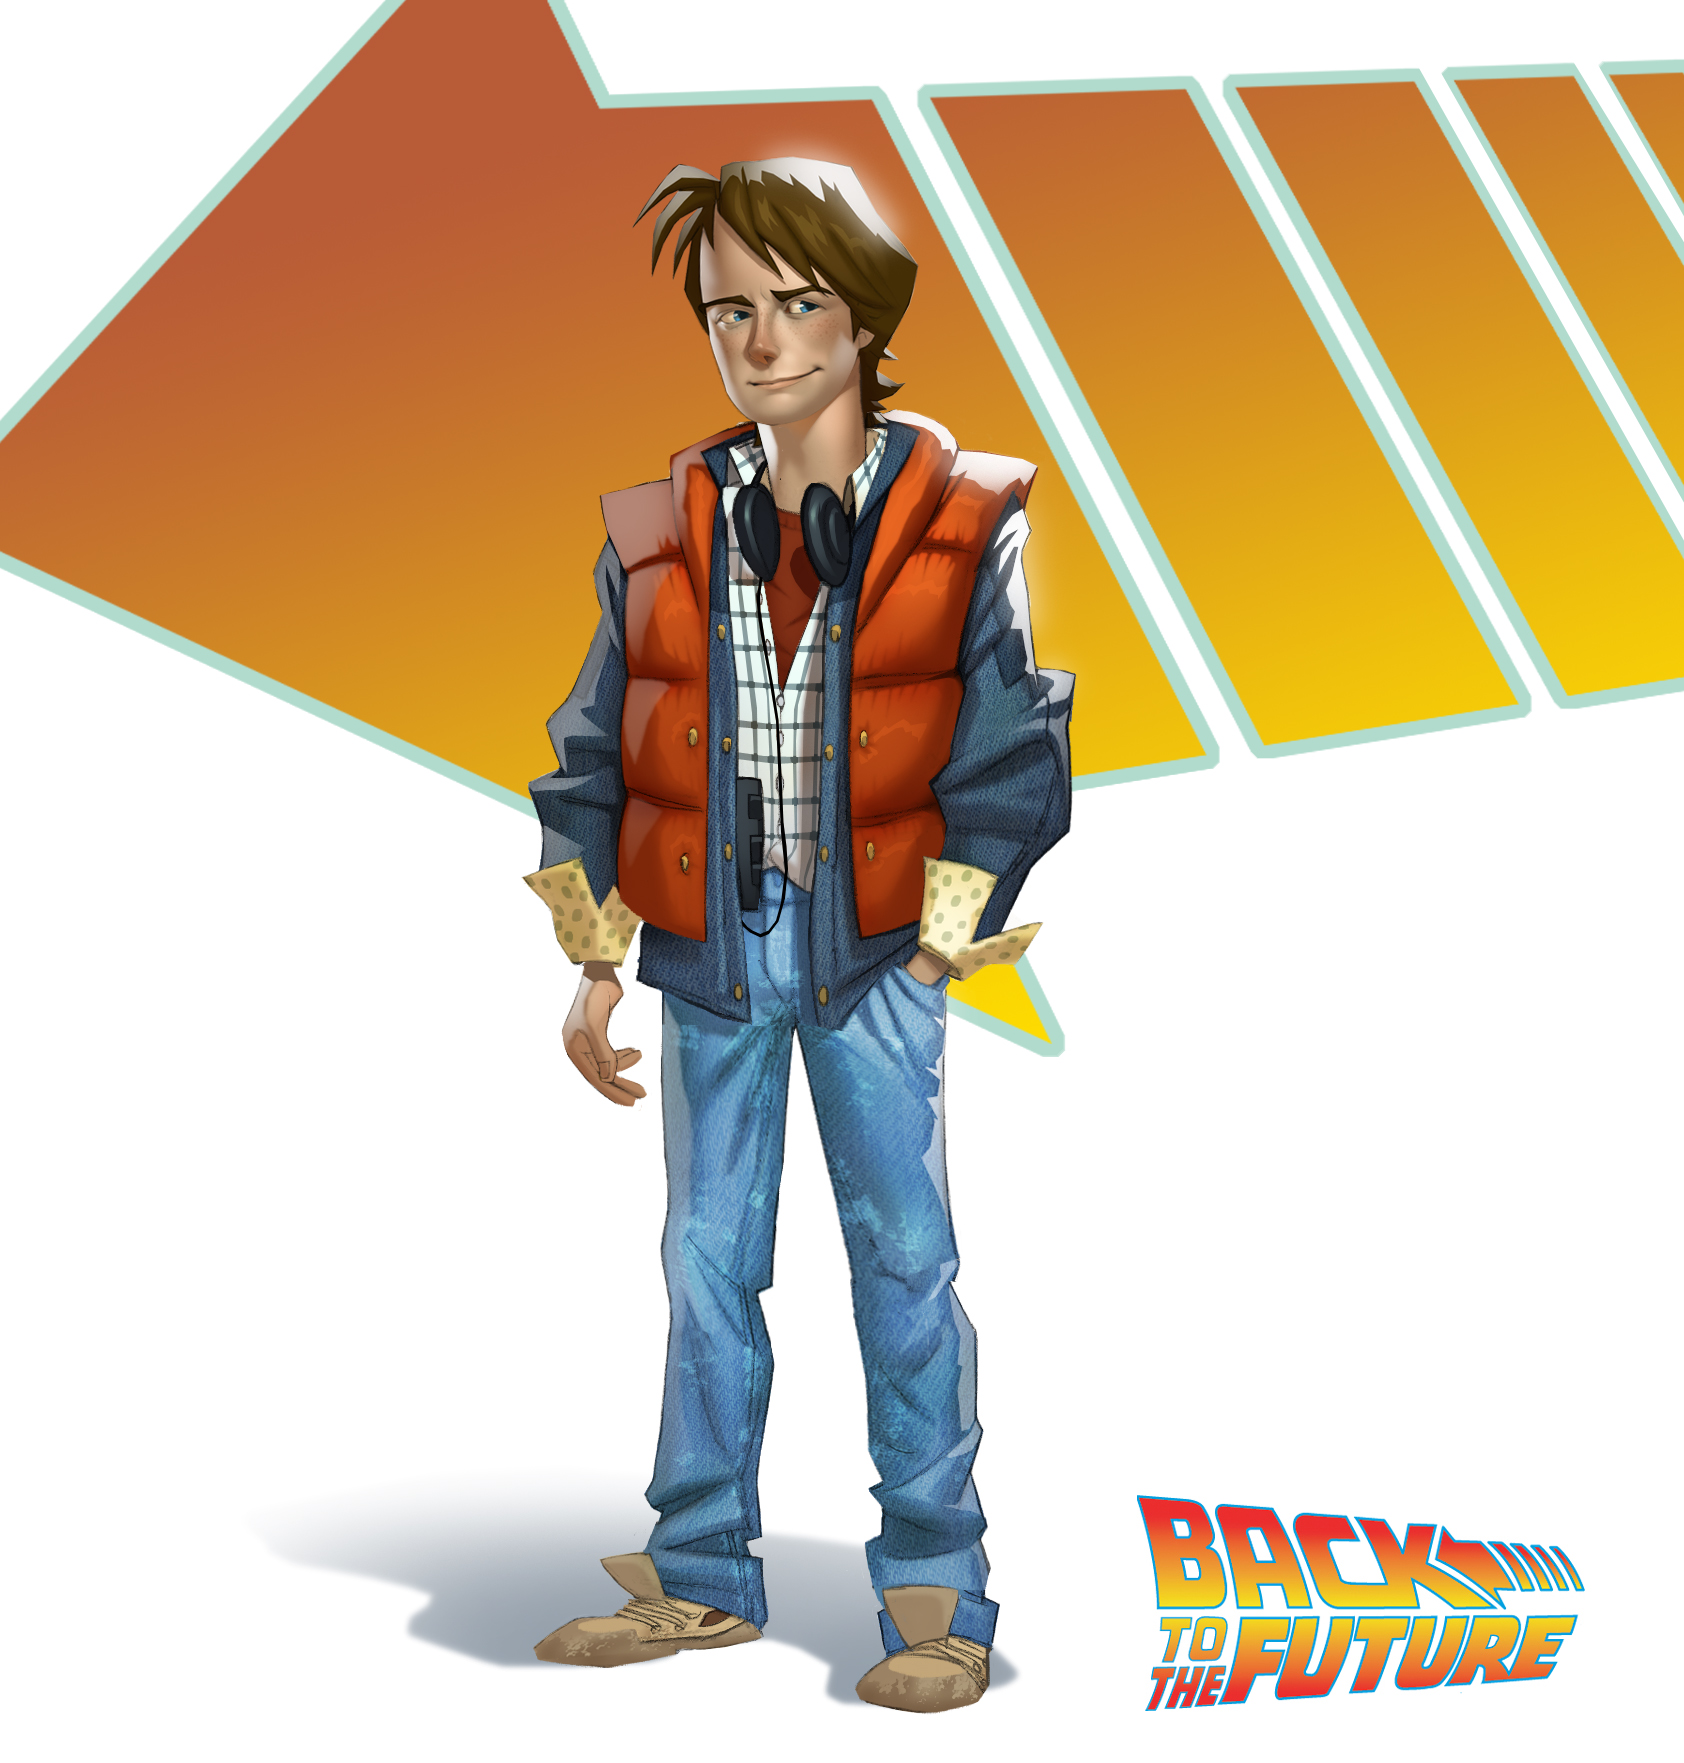 Back To The Future Concept Art